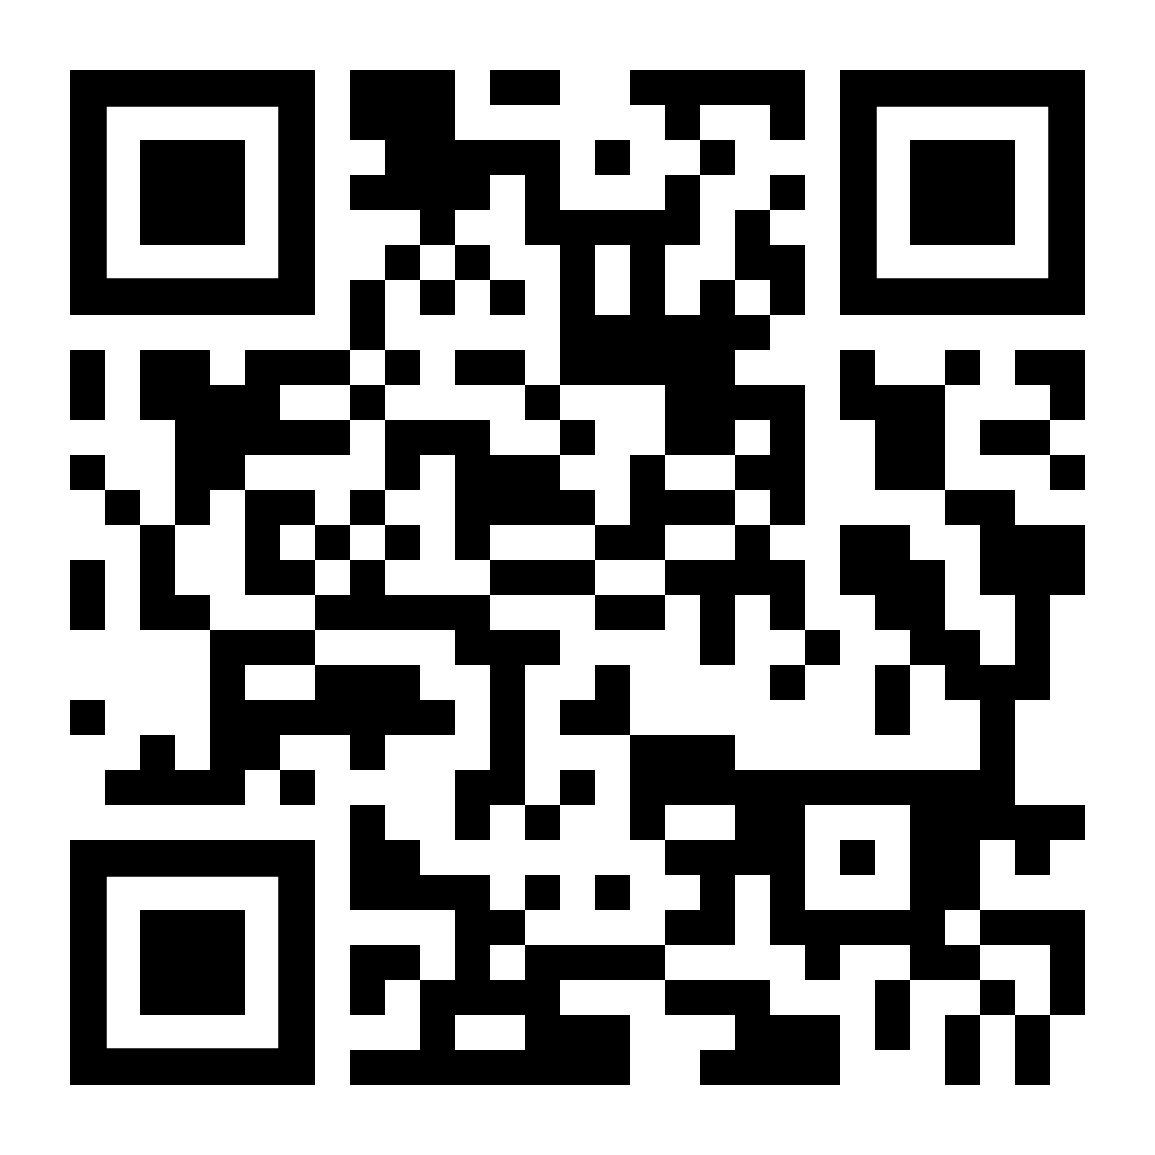 QR-Code with the Uniform Resource Locator (URL) of the Radar tutorial